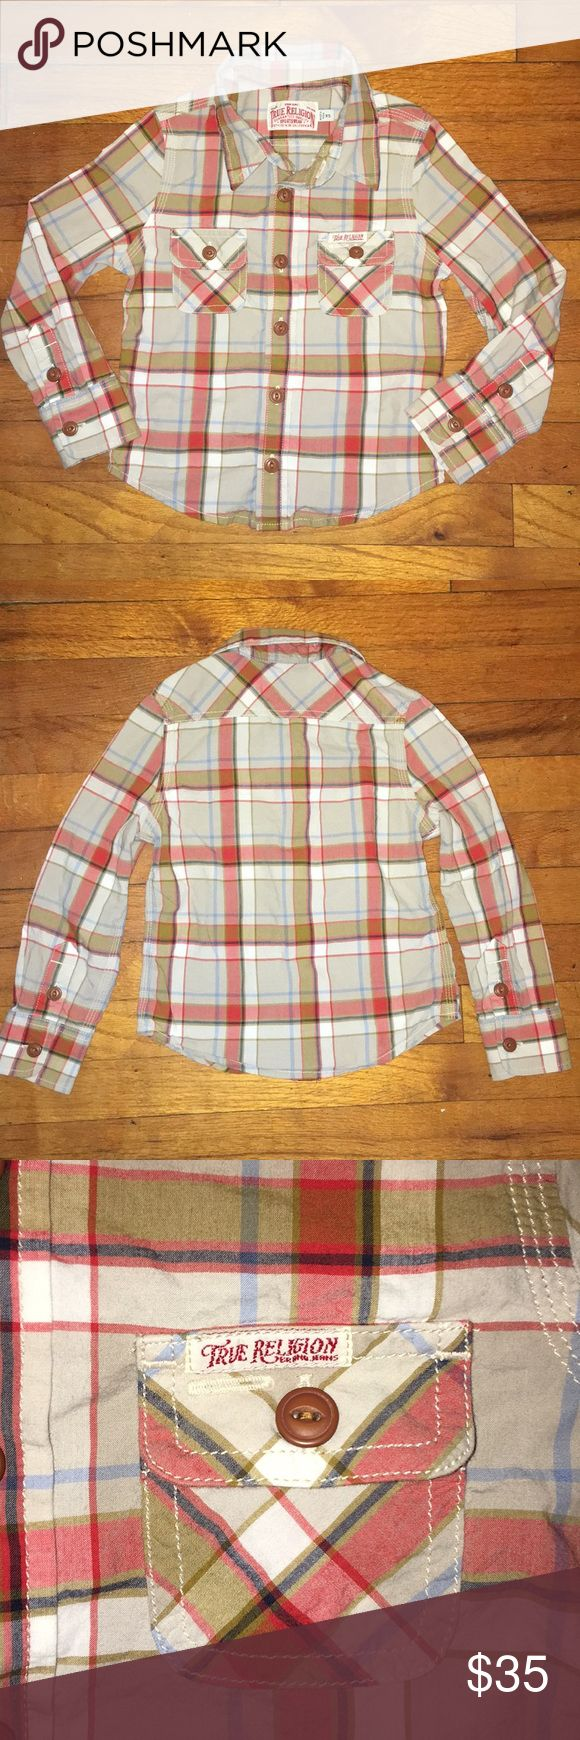 True Religion Boys Plaid Button Shirt XS This Boys True Religion Plaid Shirt is so cute! Your little one will be so stylish & Hip! Size XS (would fit a Toddler ages 2-4)  100% Cotton  It's it great Condition! Only one tiny (I mean tiny) little hole right above the brand label on the inside of the back Shirt (see last pic)  You honestly can not see it. I just like to be very thorough when listing my items.  Please check out my other items for sale! True Religion Shirts & Tops Button Down…